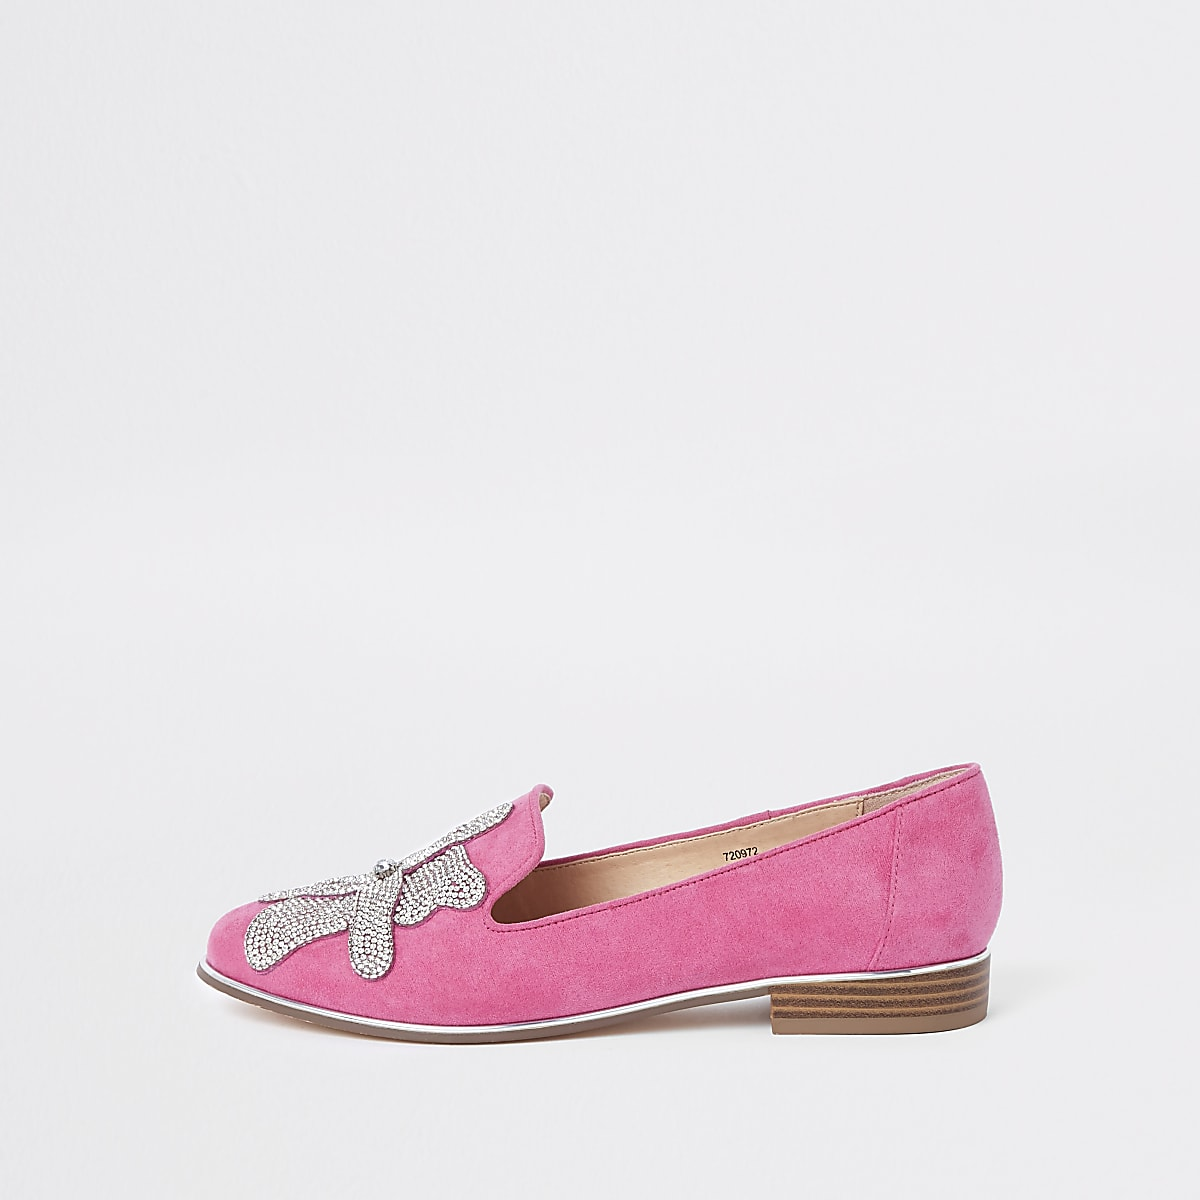 a4da838c92bf Pink floral diamante embellished loafers - Shoes - Shoes & Boots - women